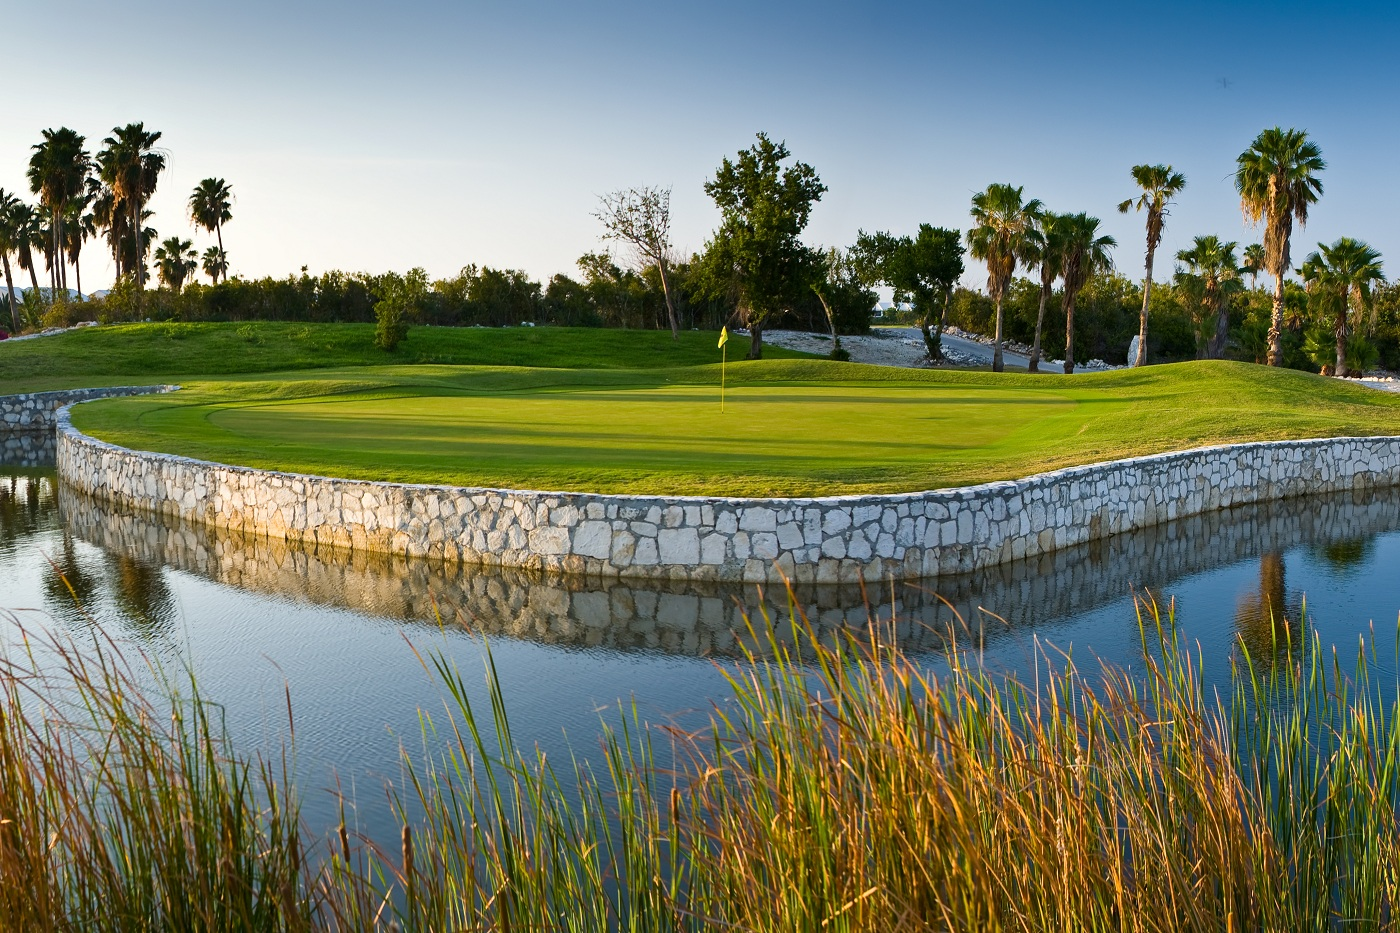 Provo Golf Course in Turks and Caicos